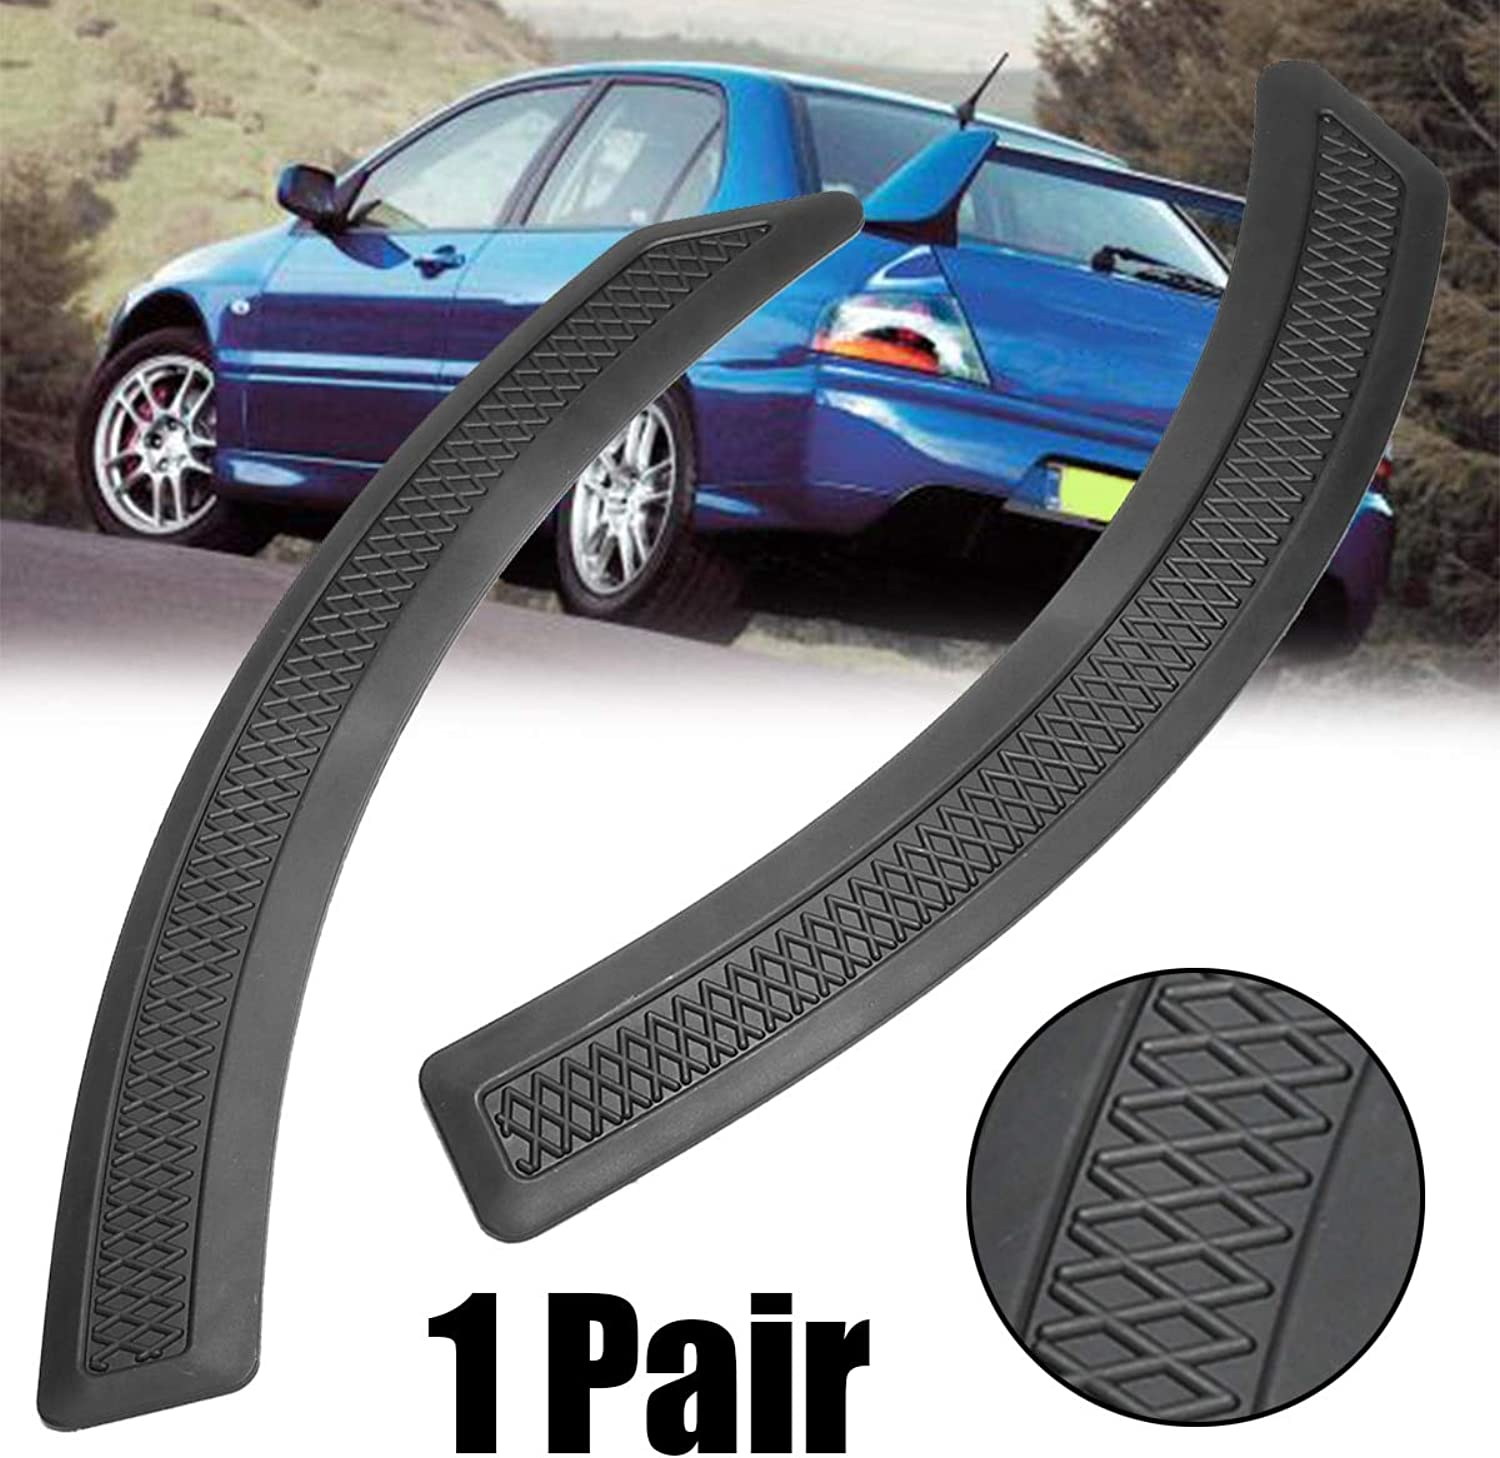 1 Pair Front Fender Side Vent Mesh Cover Trim ABS Black Moulding for Mitsubishi Lancer 20082015